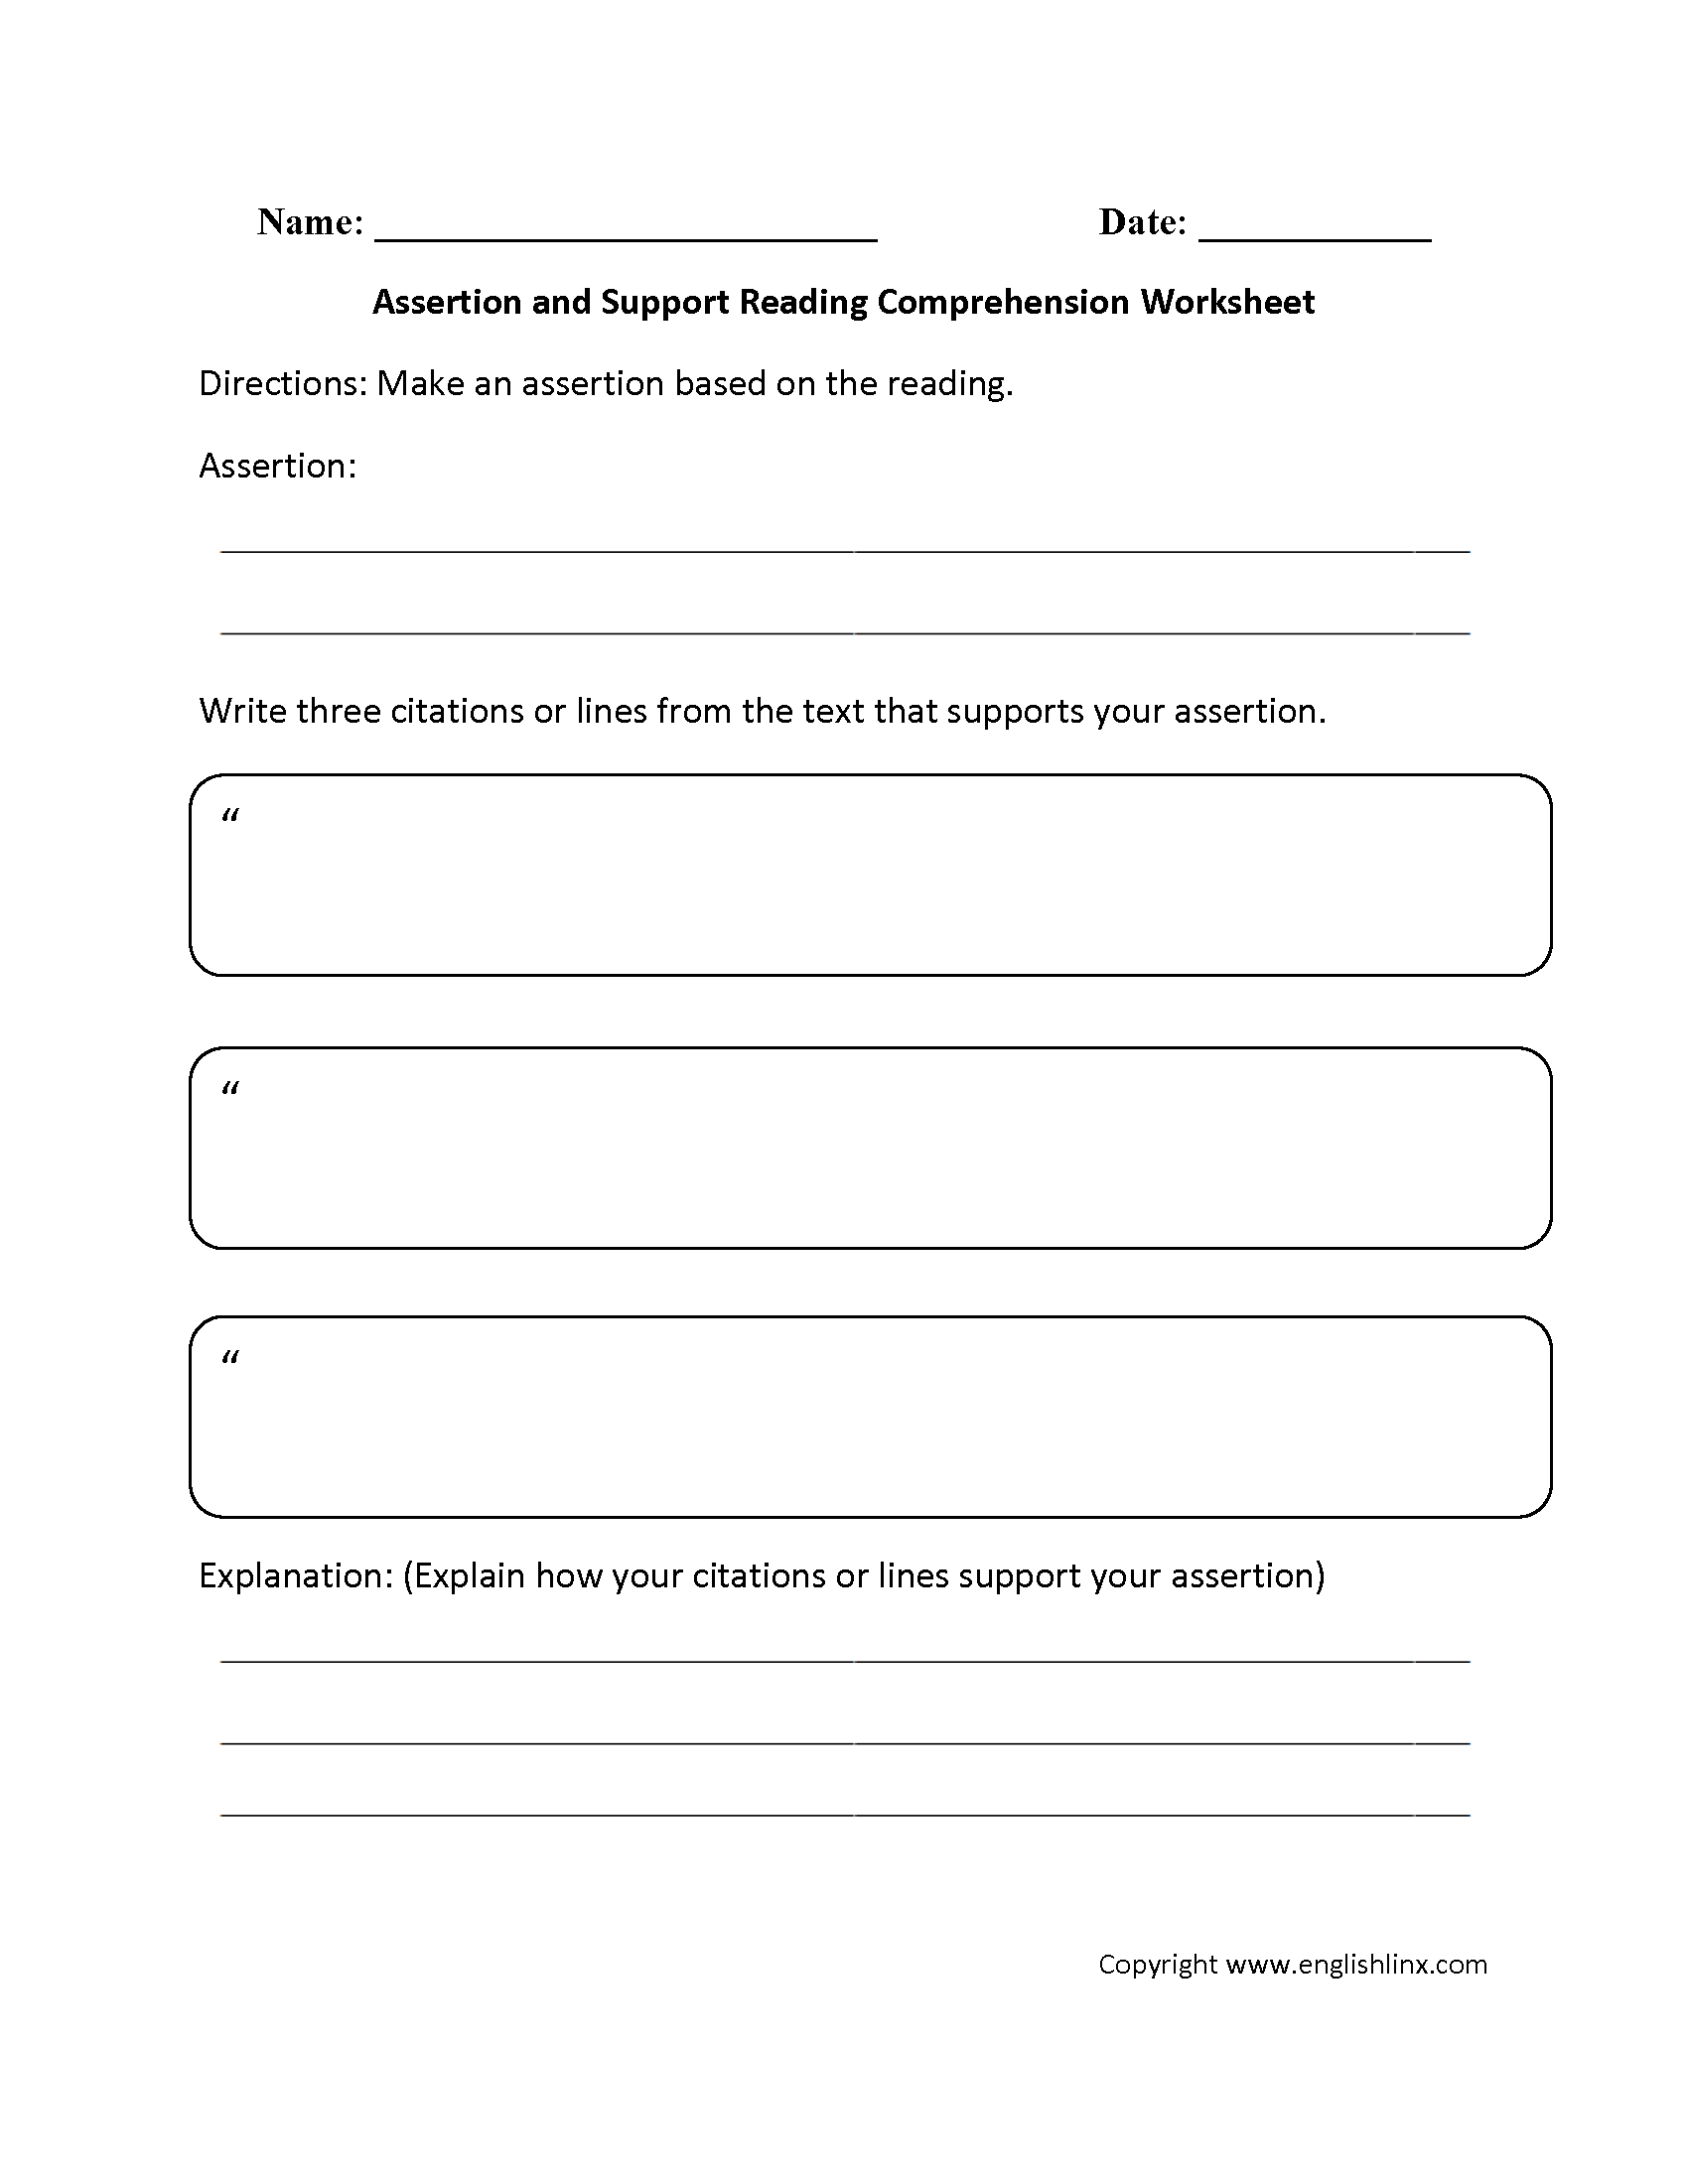 Worksheet Reading Comprehension Sheets englishlinx com reading comprehension worksheets worksheet